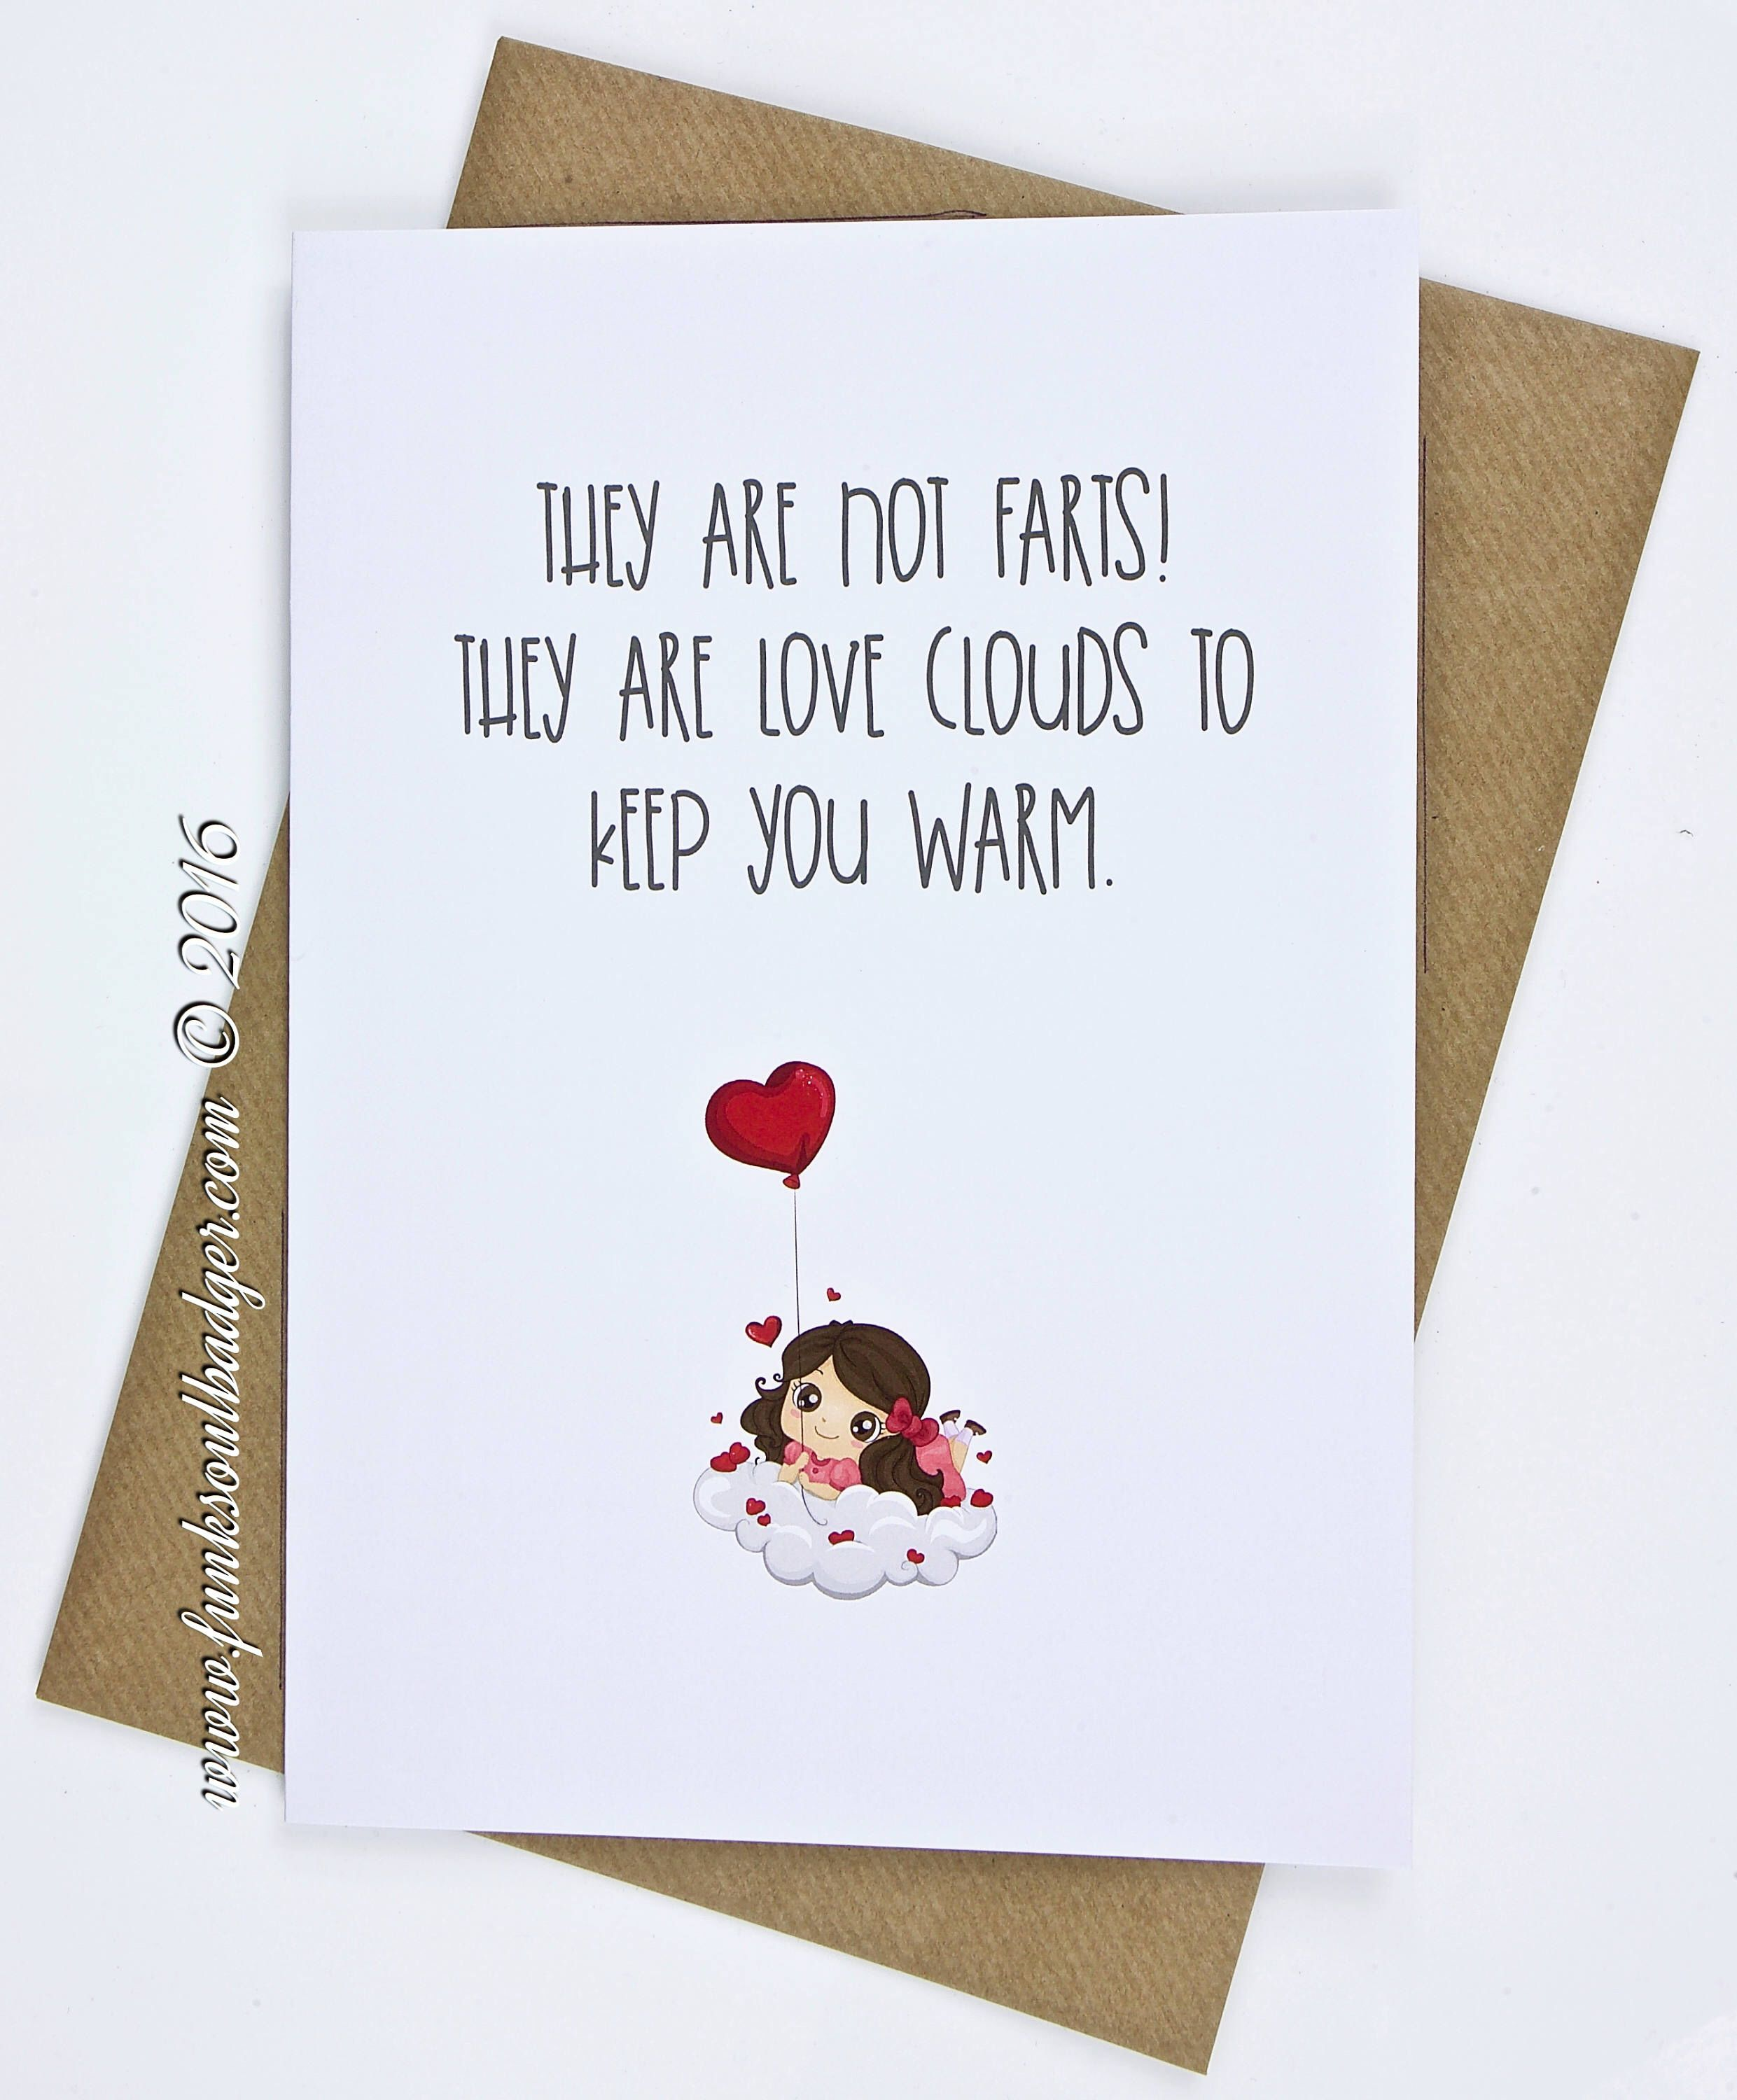 Funny Love Card They Are Not Farts With Images Funny